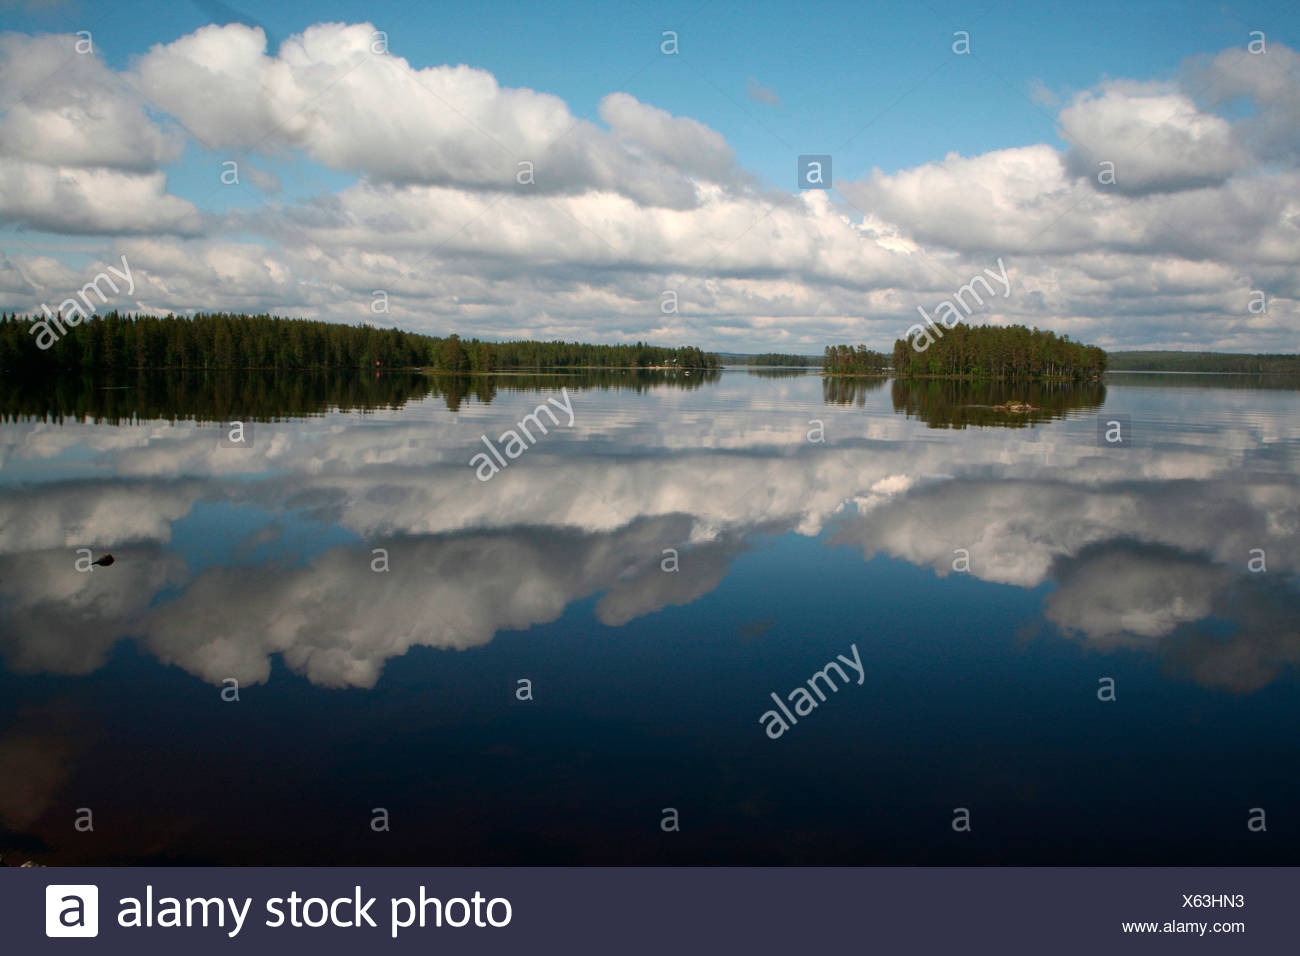 Lake landscape, Lapland, Finland, Europe Stock Photo